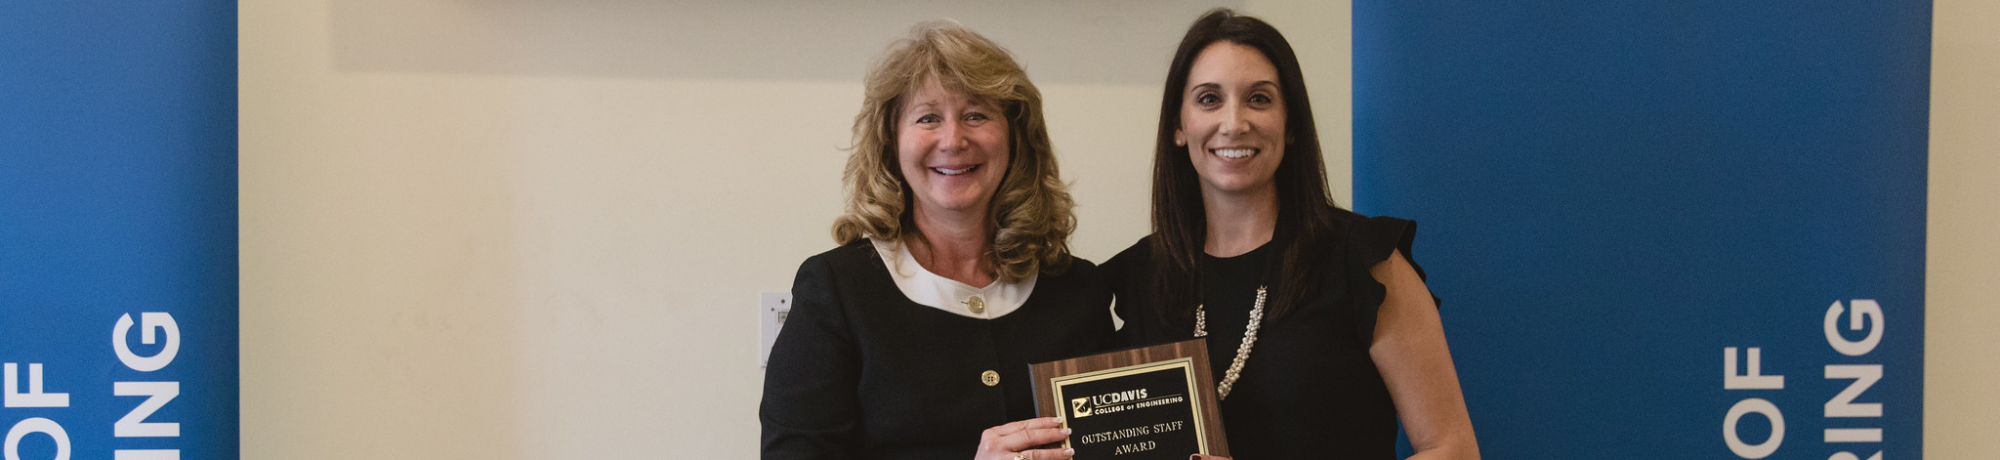 Alison Metzger-Jones, one of the 2019 award winners, with Dean Curtis